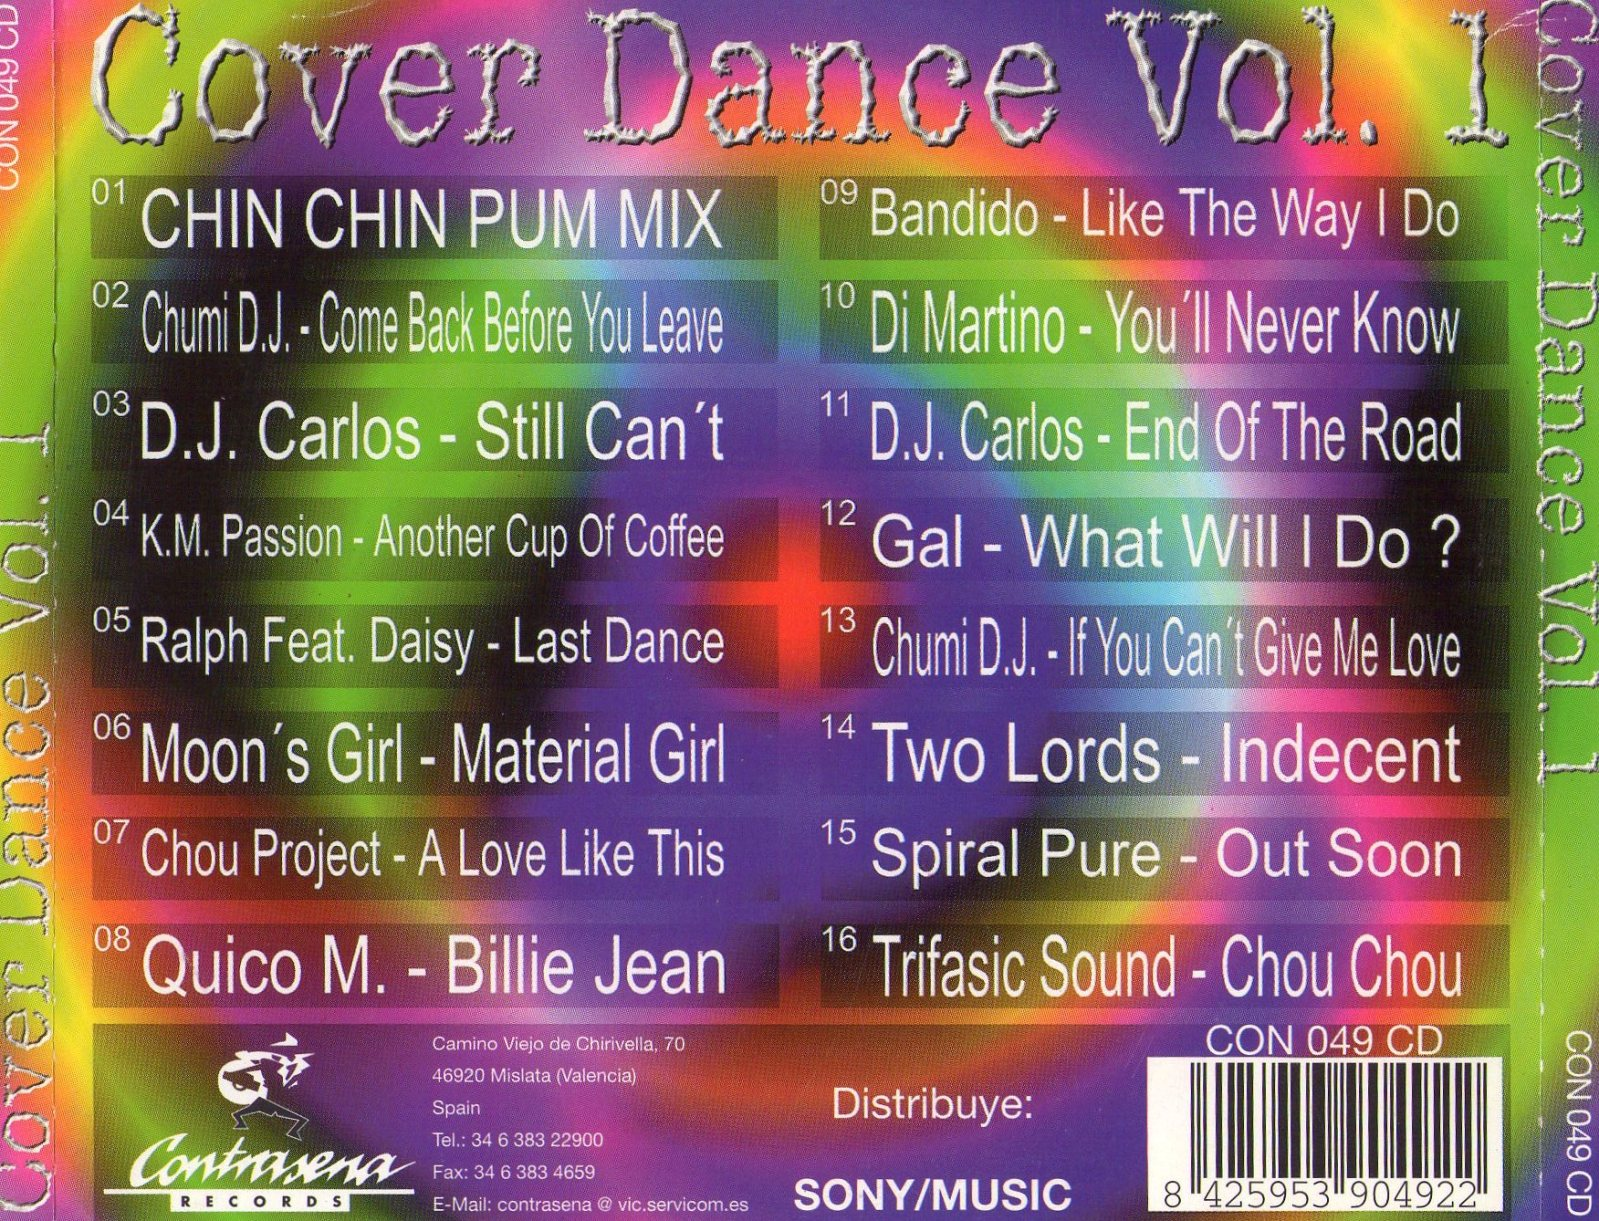 COVER DANCE VOL .1 -1997 - COMPILATION - 192KBPS - CONTRASEÑA RECORDS 2u93lzo